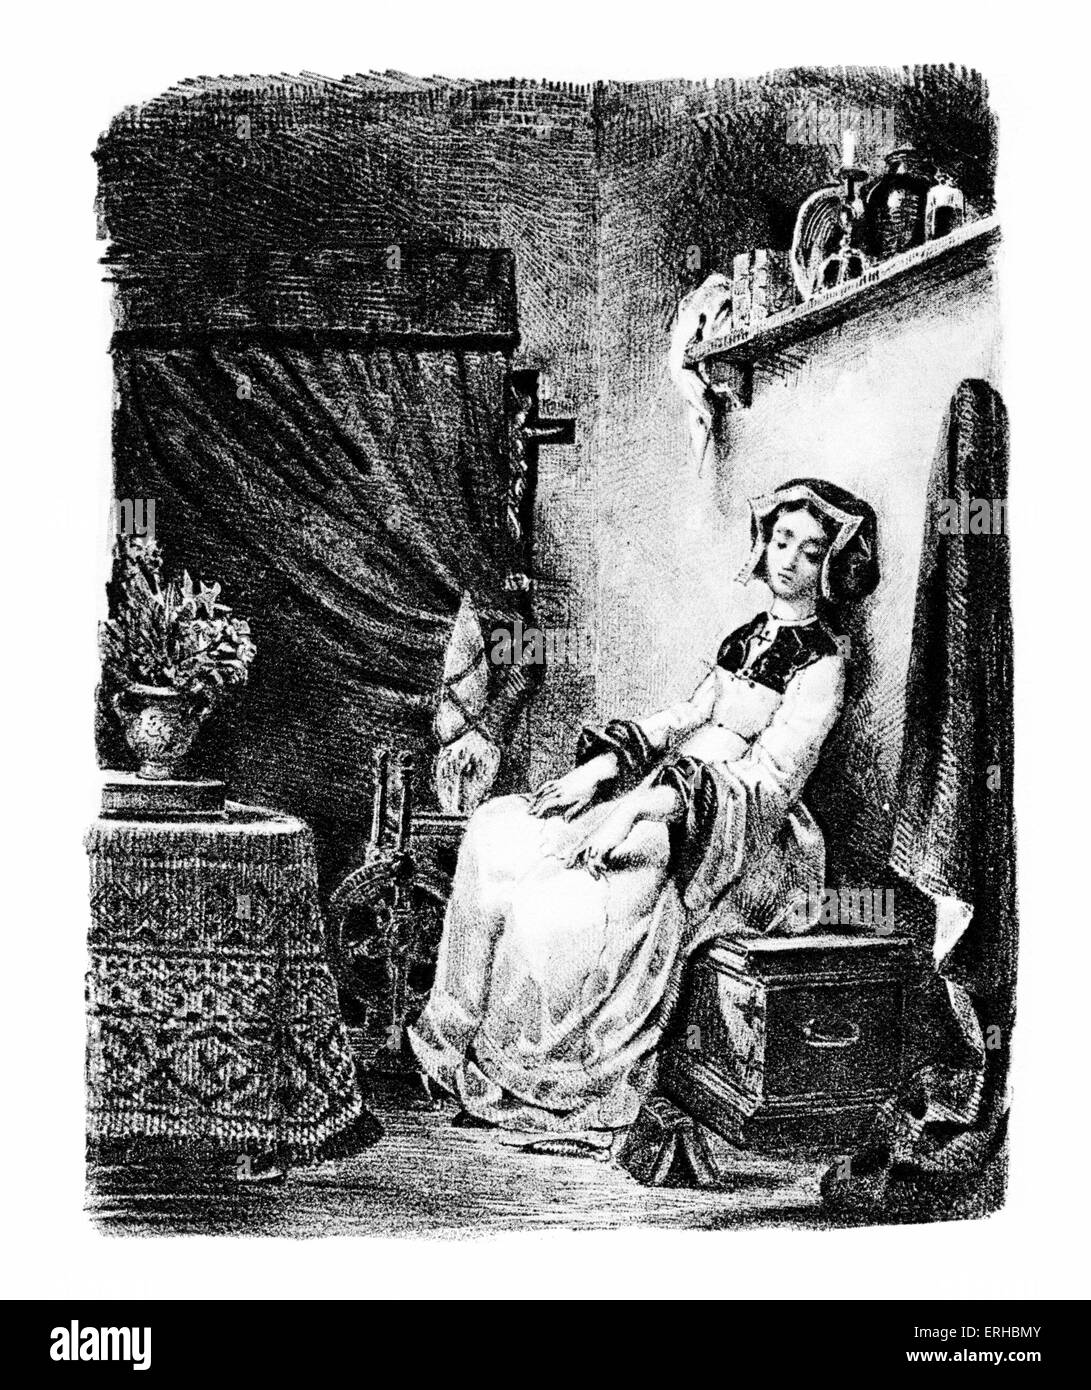 Goethe 's Faust, 1828.  Marguerite / Gretchen at the spinning wheel Lithograph by Eugene Delacroix.  German - Stock Image